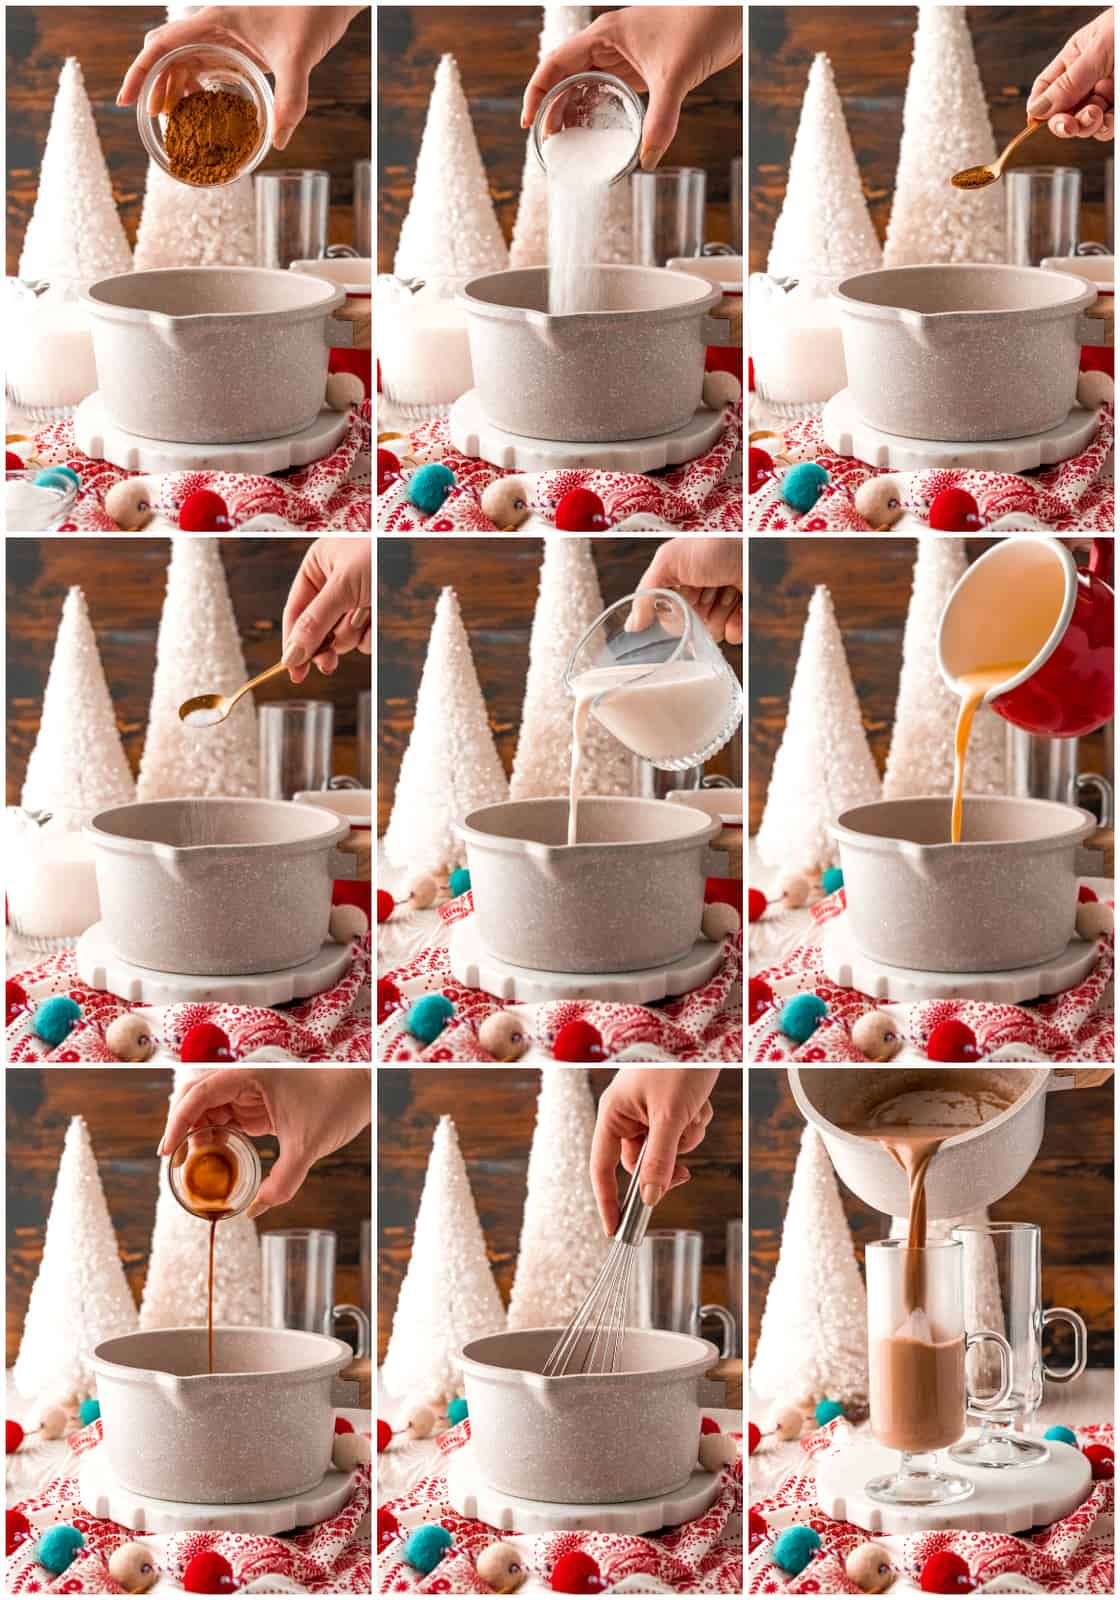 Step by step photos on how to make Eggnog Hot Chocolate